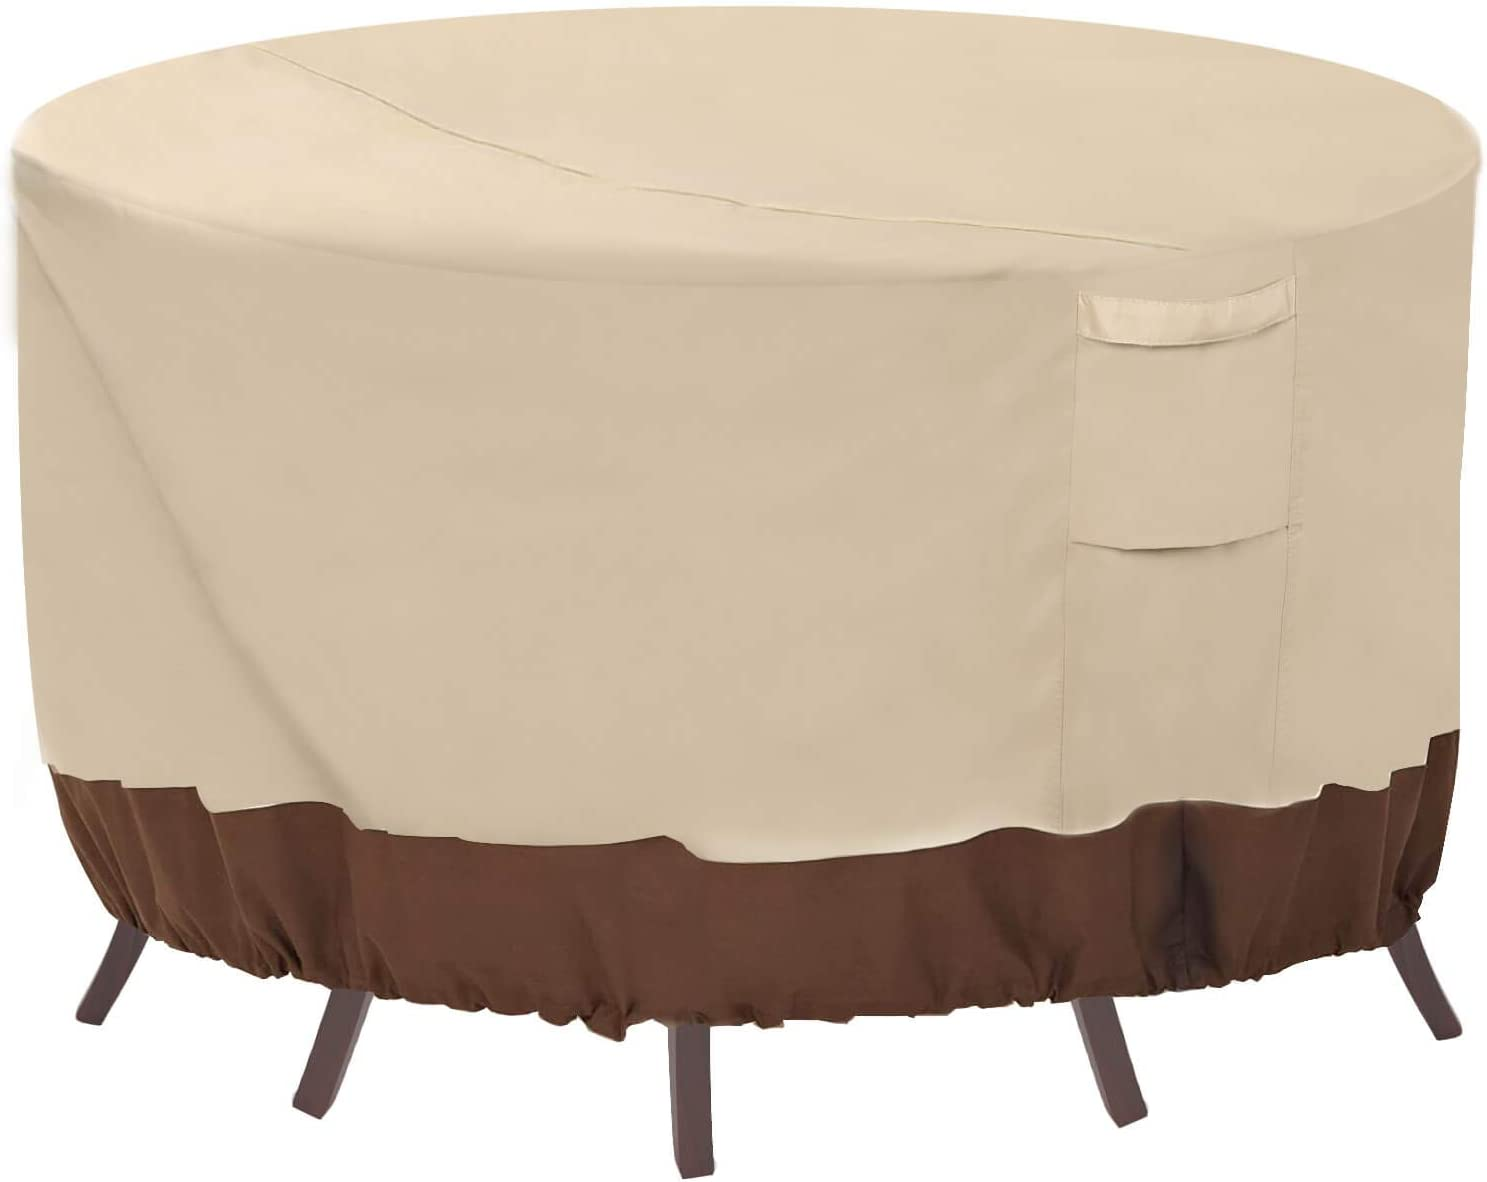 "Vailge Round Patio Furniture Covers, 100% Waterproof Outdoor Table Chair Set Covers, Anti-Fading Cover for Outdoor Furniture Set, UV Resistant, 72"" DIAx28 H, Beige & Brown"